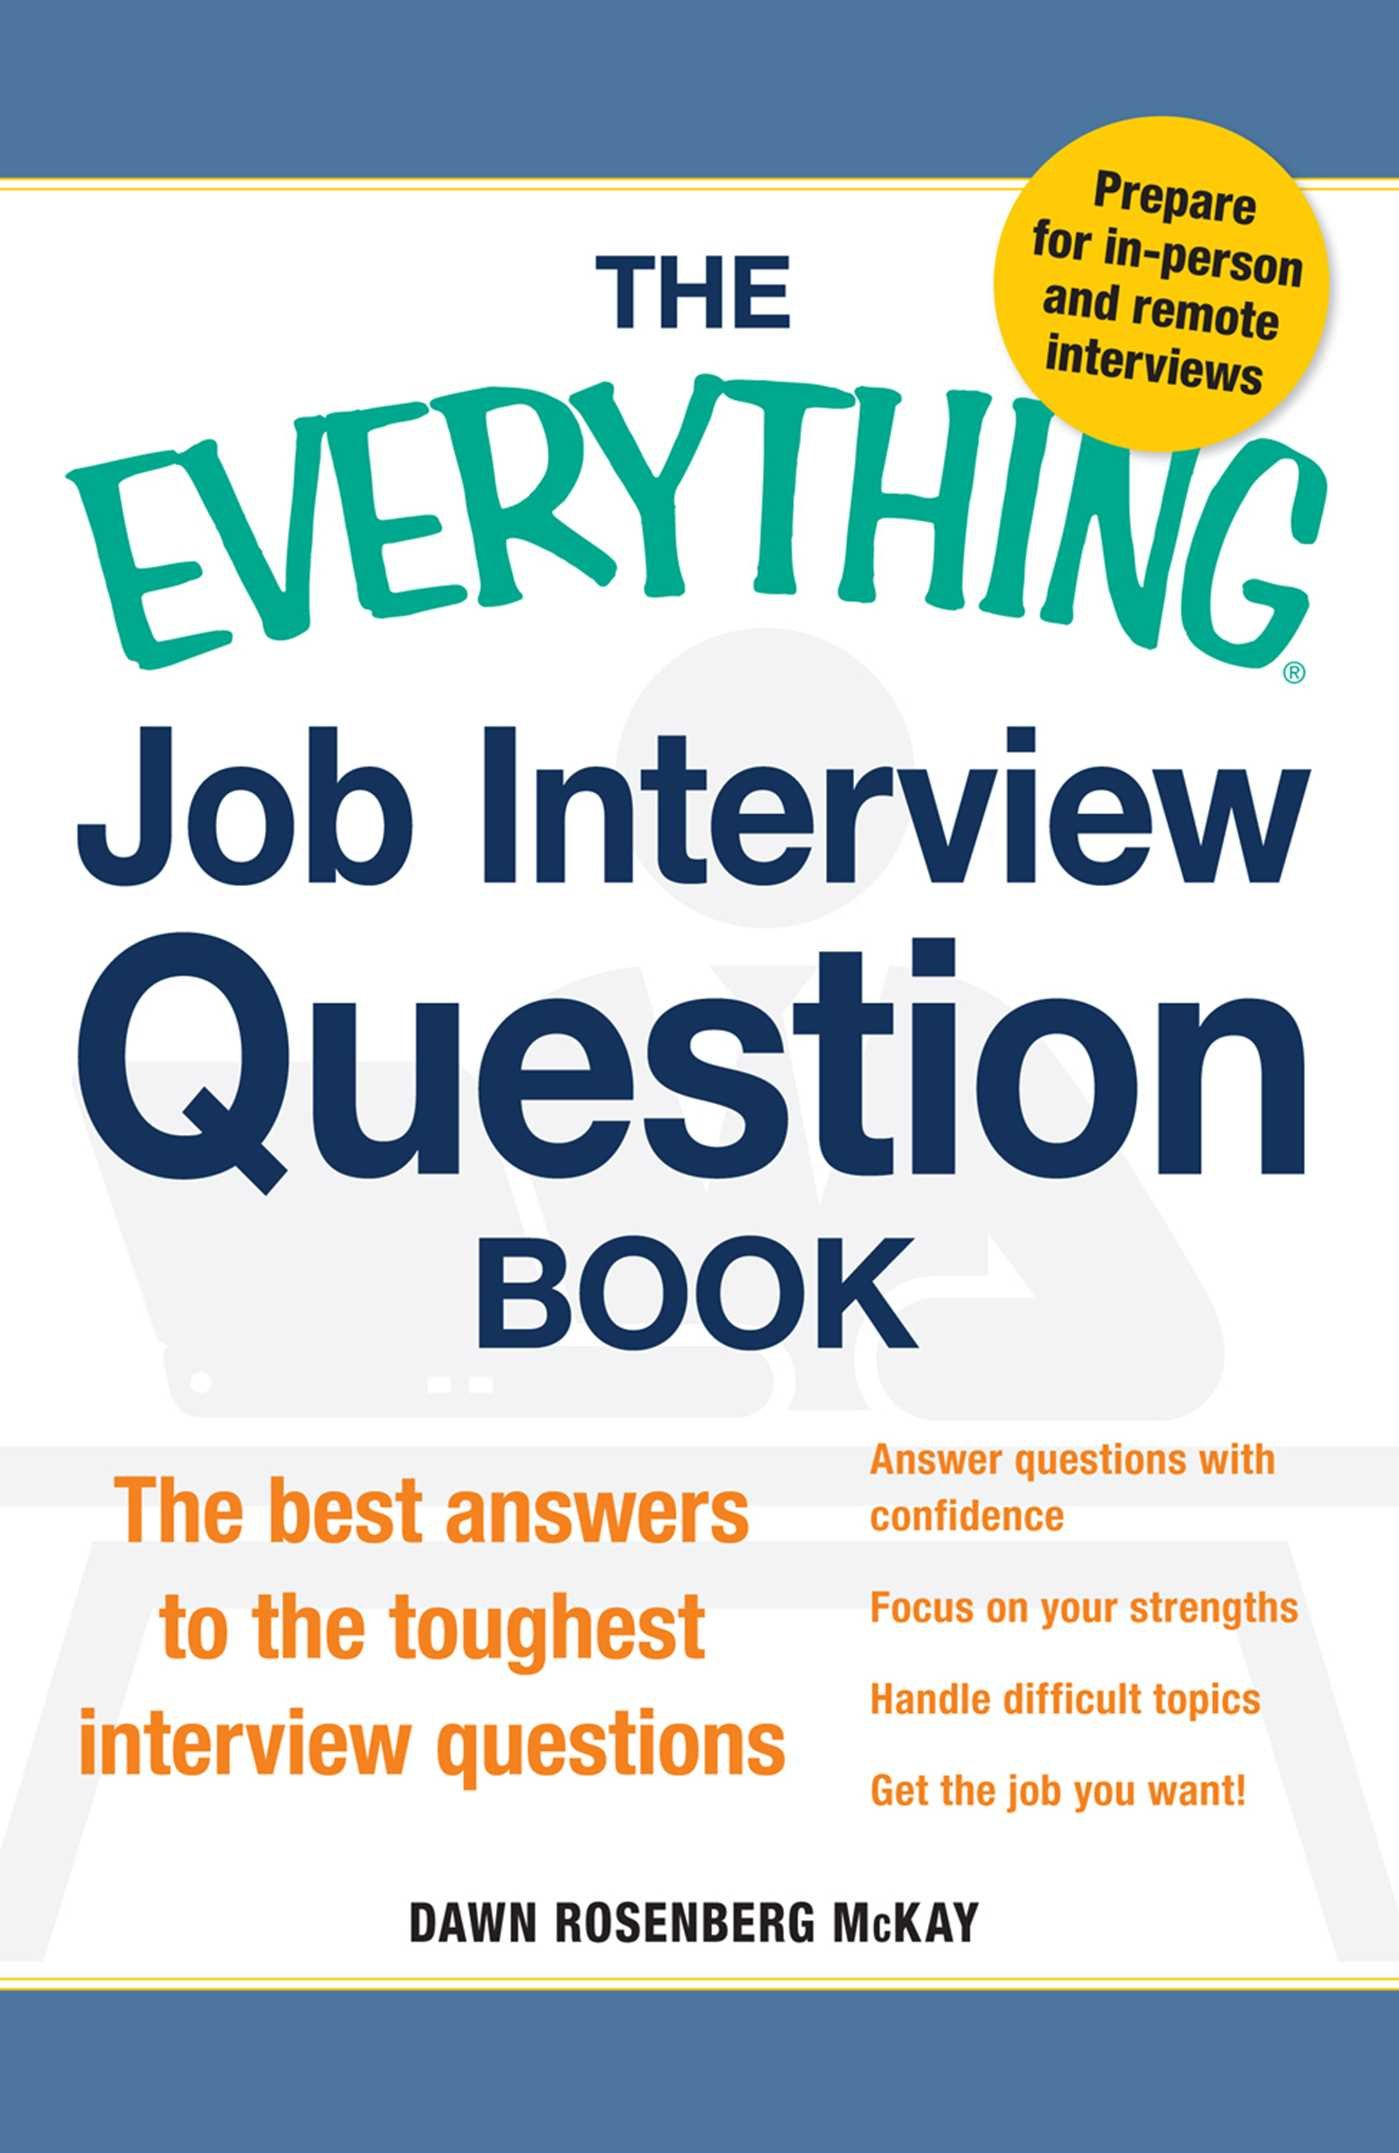 the everything job interview question book the best answers to the everything job interview question book the best answers to the toughest interview questions dawn rosenberg mckay 0045079569553 amazon com books